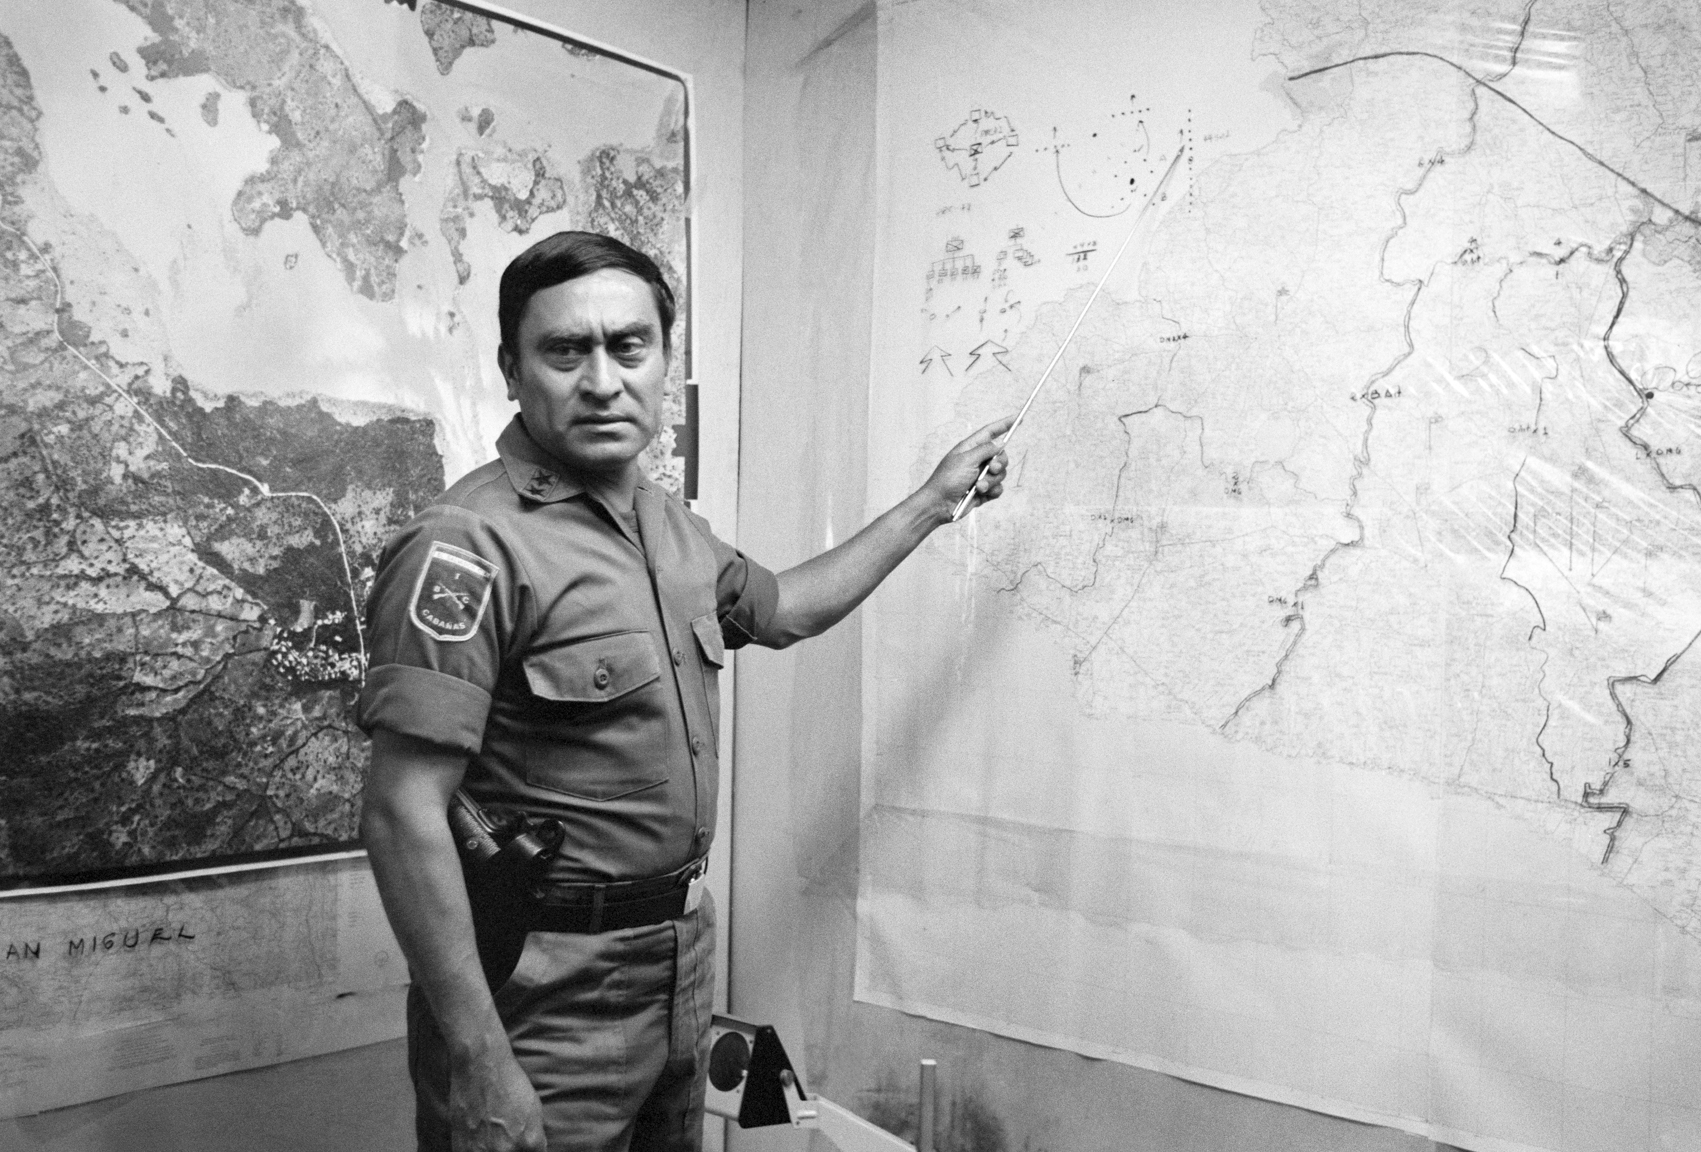 Col. Sigfredo Ochoa Pérez, commanding officer of the U.S.-trained Cabañas Battalion, points to a map describing leftist FMLN guerrilla movement and infiltration routes October 1983 at his military headquarters in Sesuntepeque, El Salvador. Col. Ochoa was commander of Destacamiento Militar 2 and known as an aggressive counterinsurgency officer unafraid to use killing zone tactics and to kill civilians he suspected of being leftist guerrilla supporters.